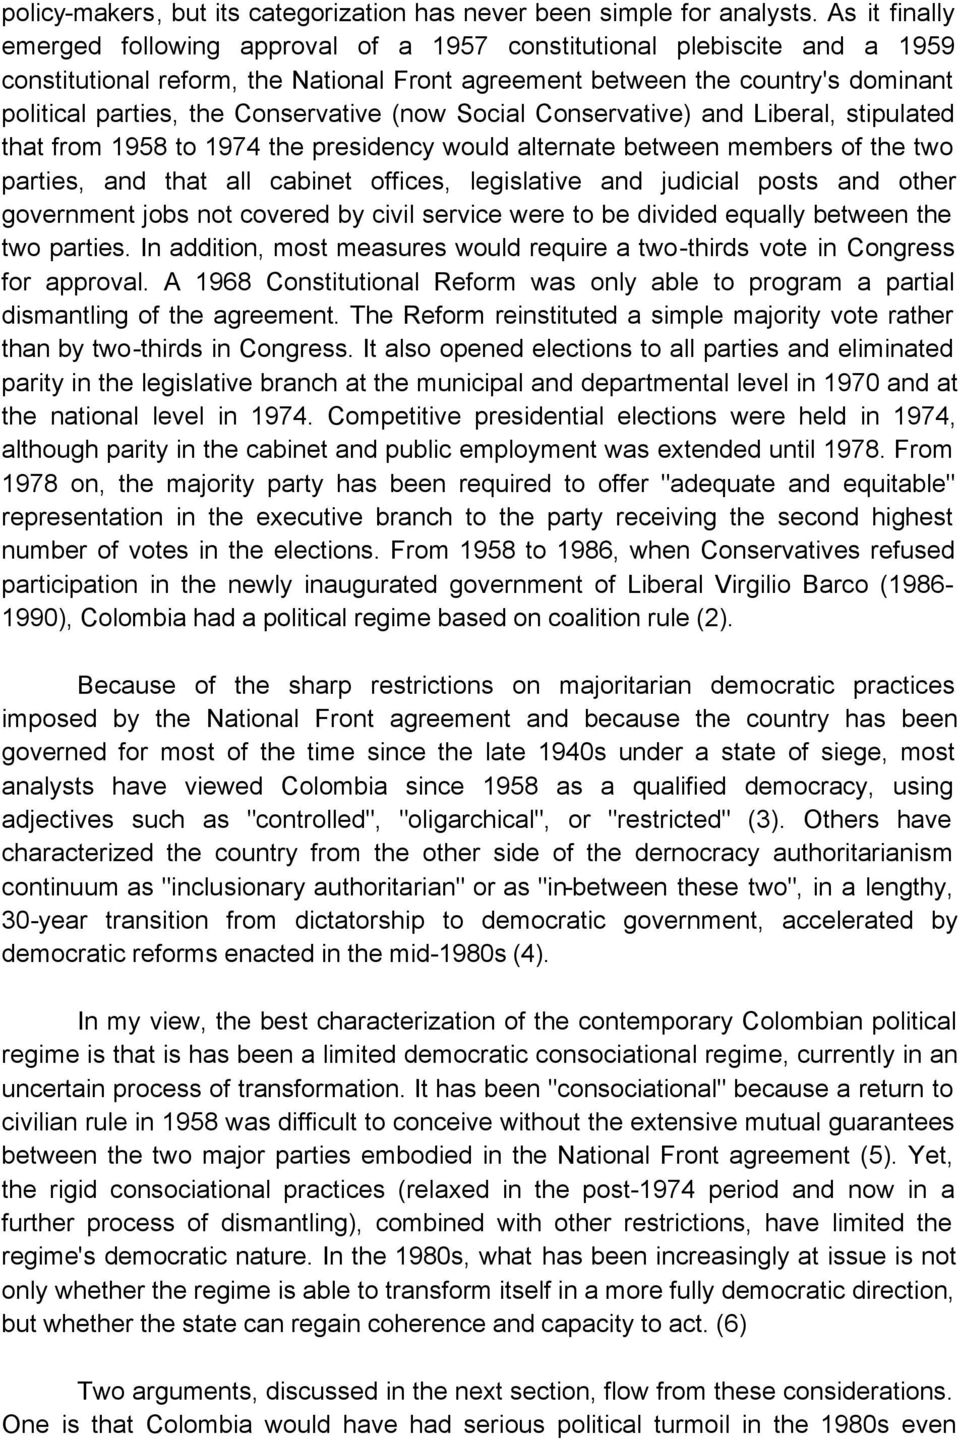 Conservative (now Social Conservative) and Liberal, stipulated that from 1958 to 1974 the presidency would alternate between members of the two parties, and that all cabinet offices, legislative and